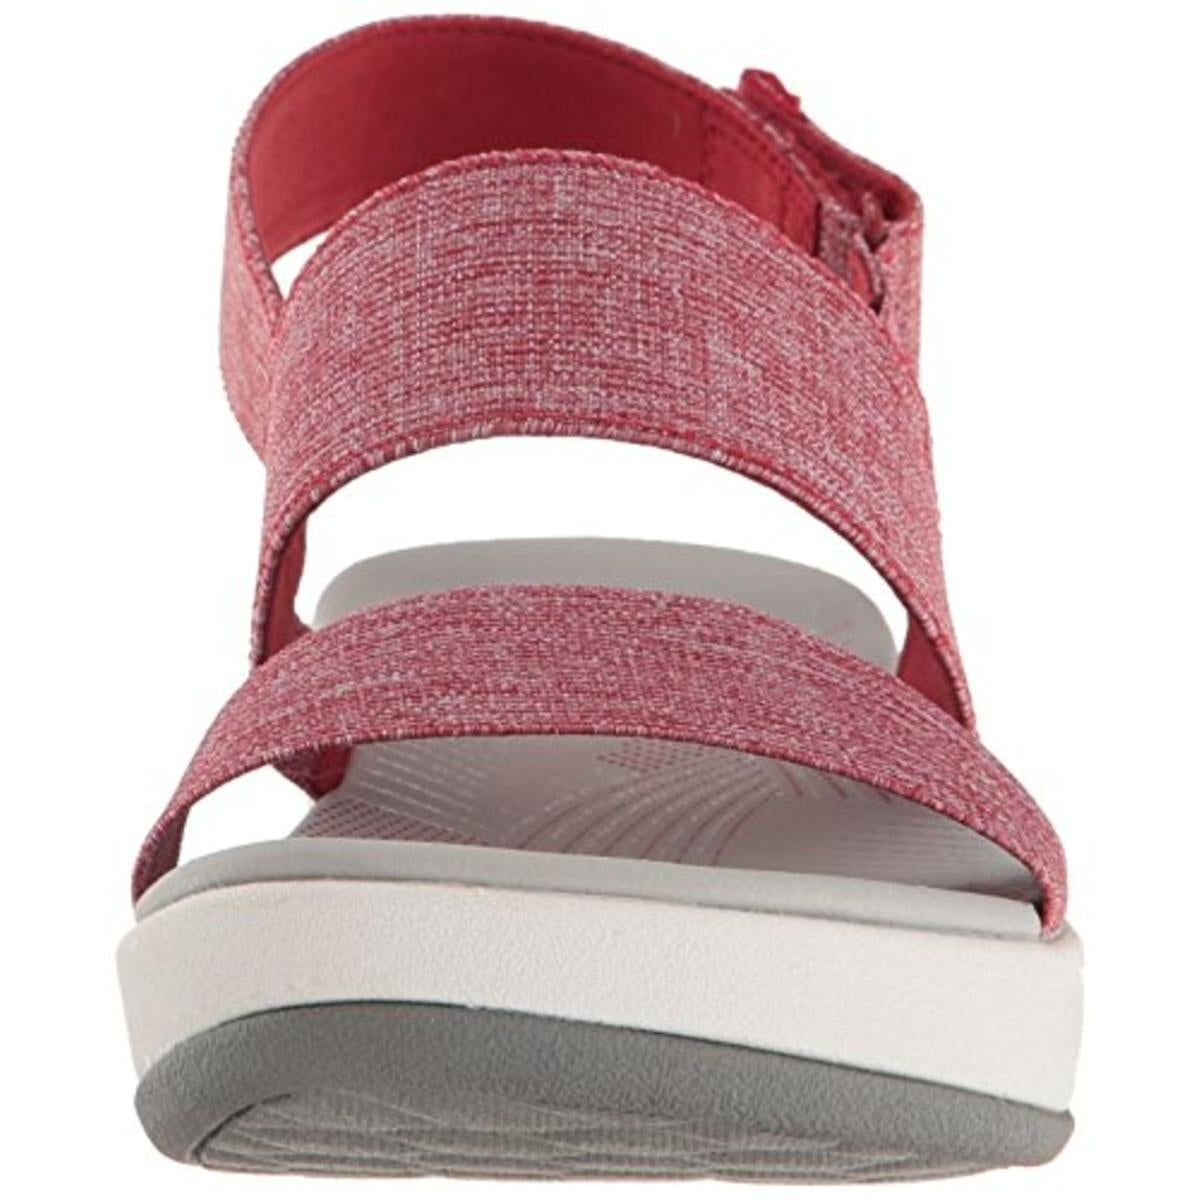 2aeaa94c24d3 Shop Clarks Womens Arla Jacory Wedge Sandals Woven Casual - 8.5 medium (b